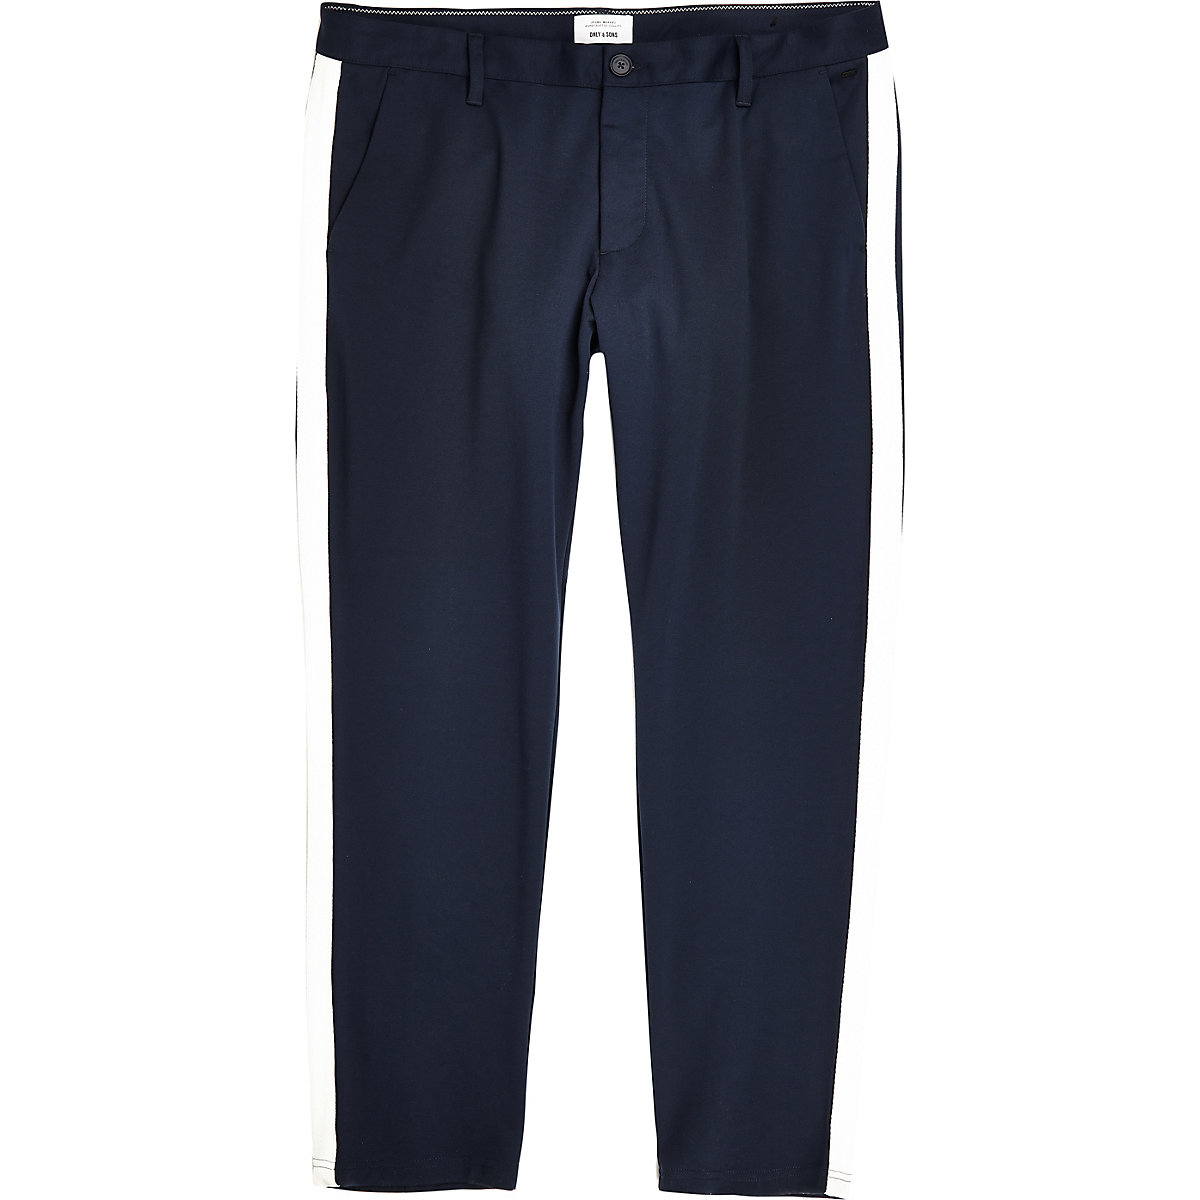 Only & Sons Big and Tall navy tape pants